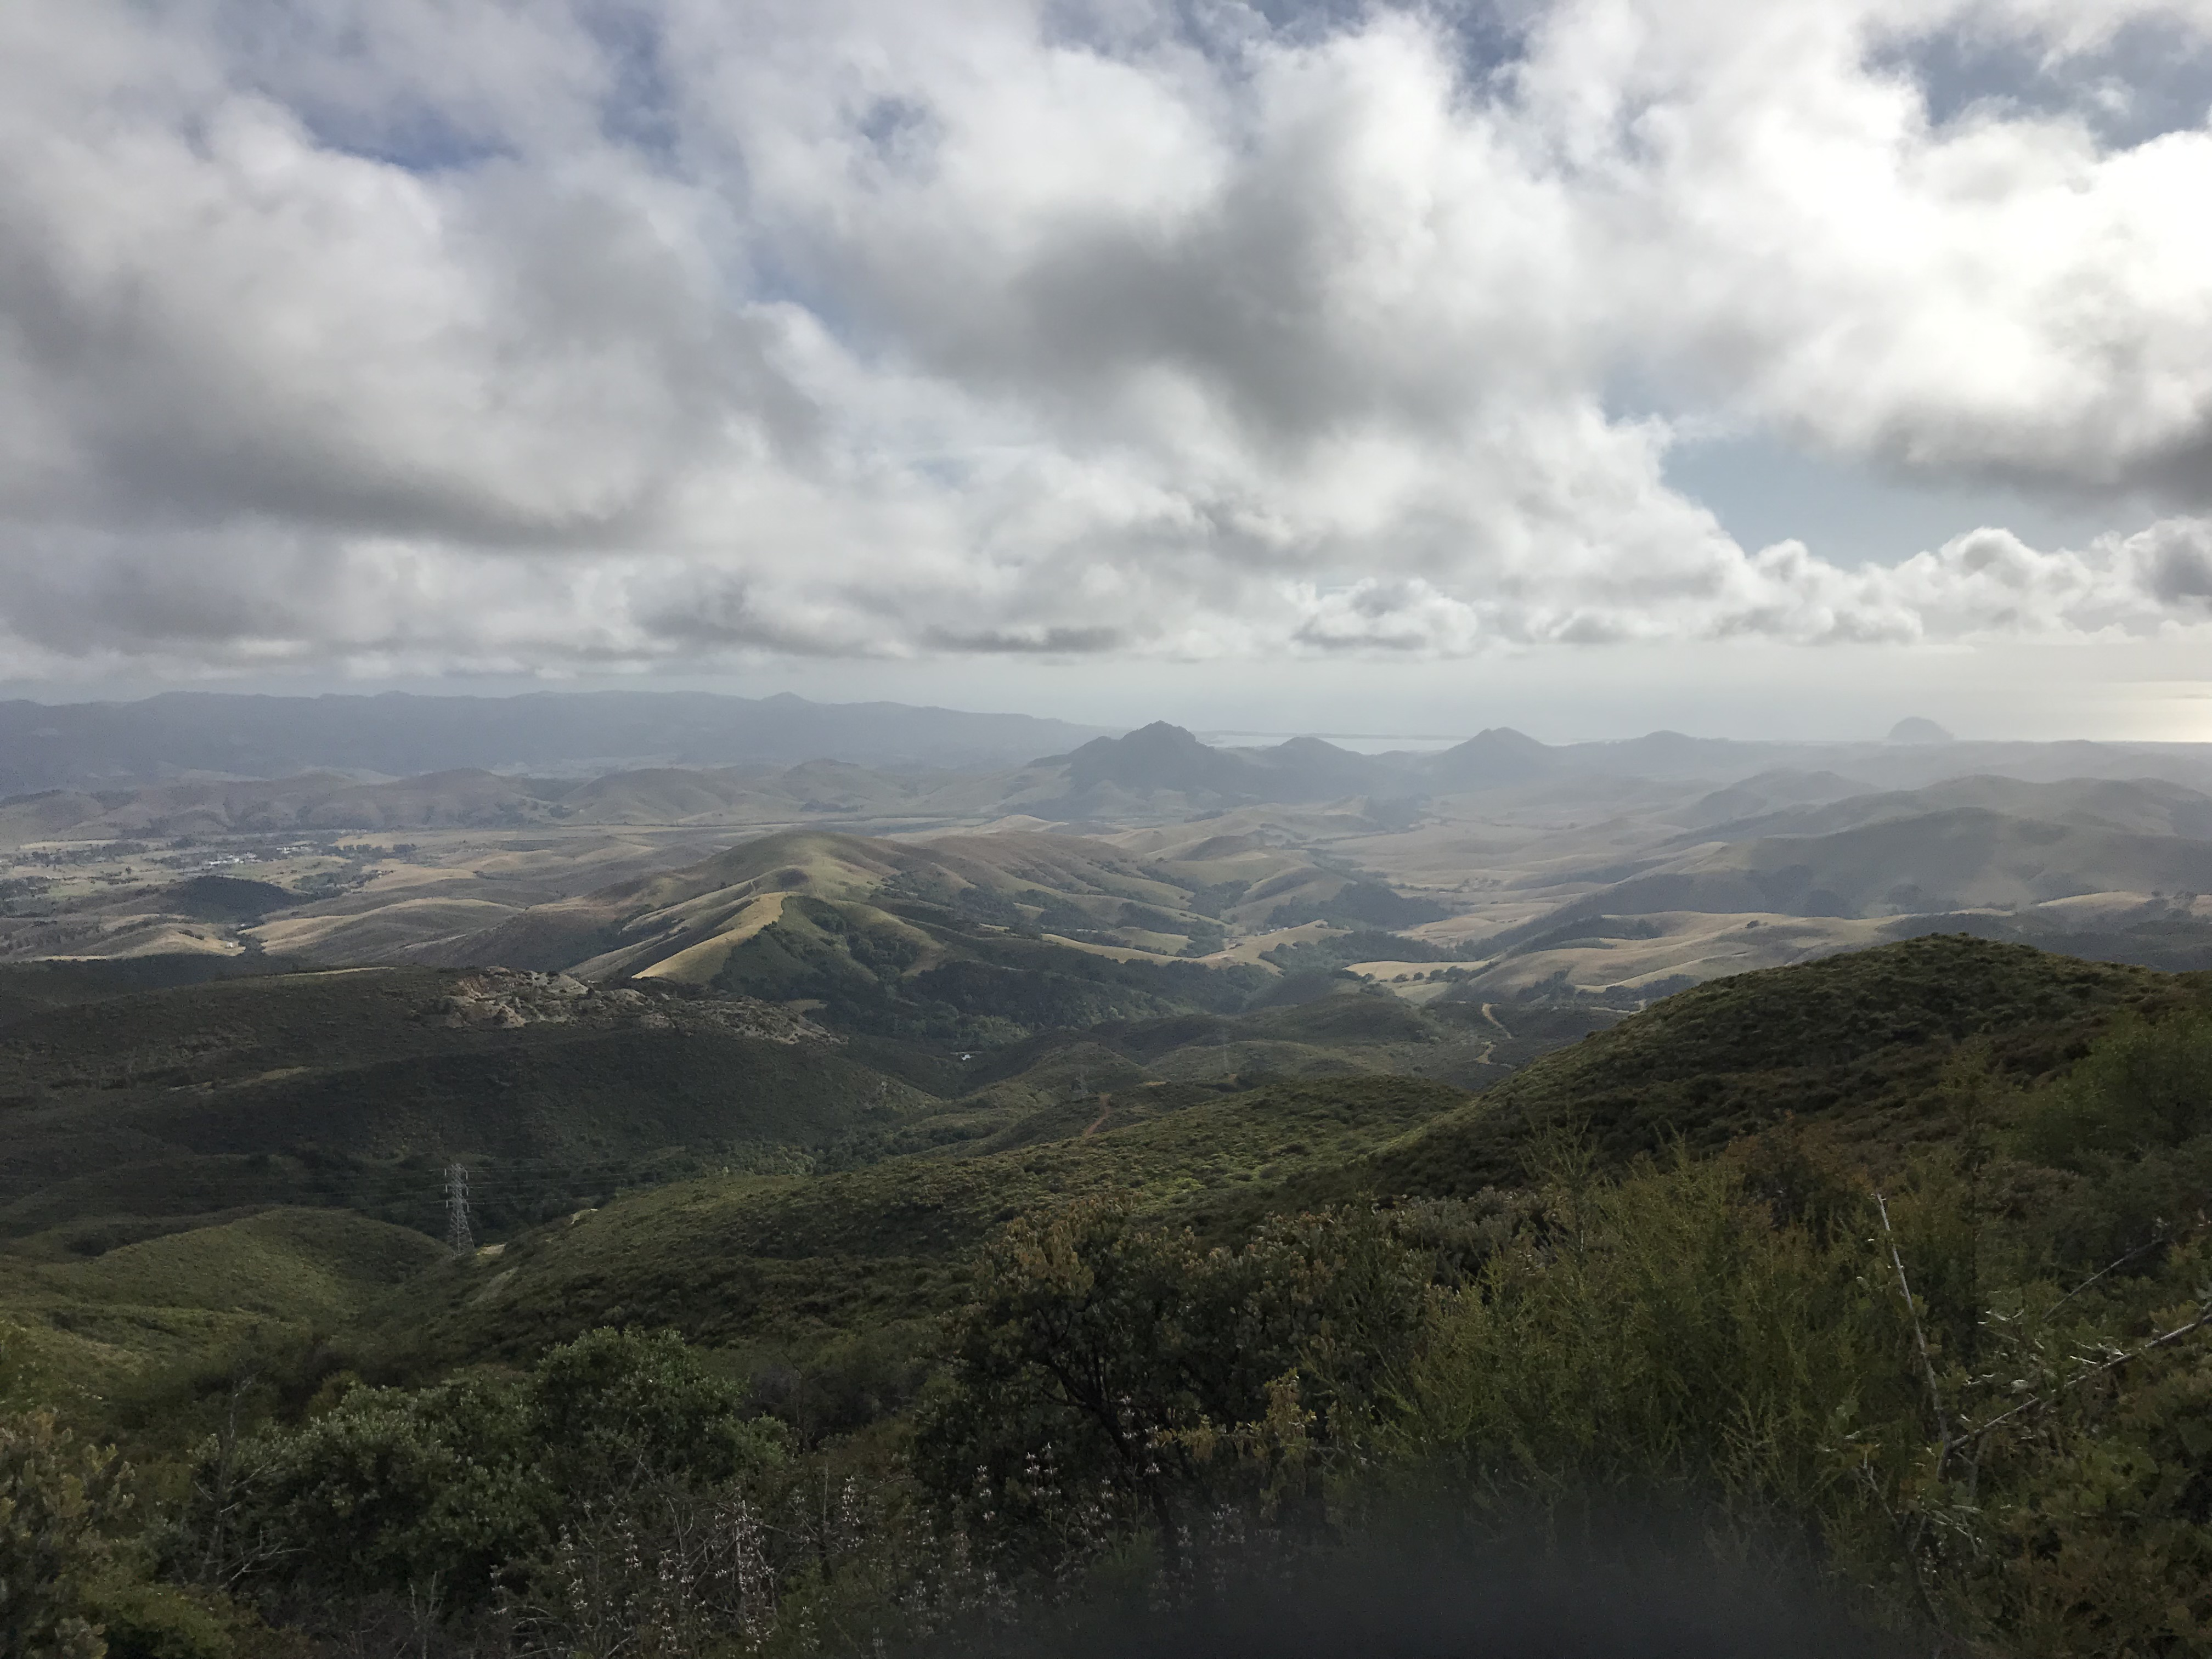 A view during the drive up to Pismo Beach. The clouds are low and there are lots of rolling hills. The landscape is darkened due to the cloudy sky.